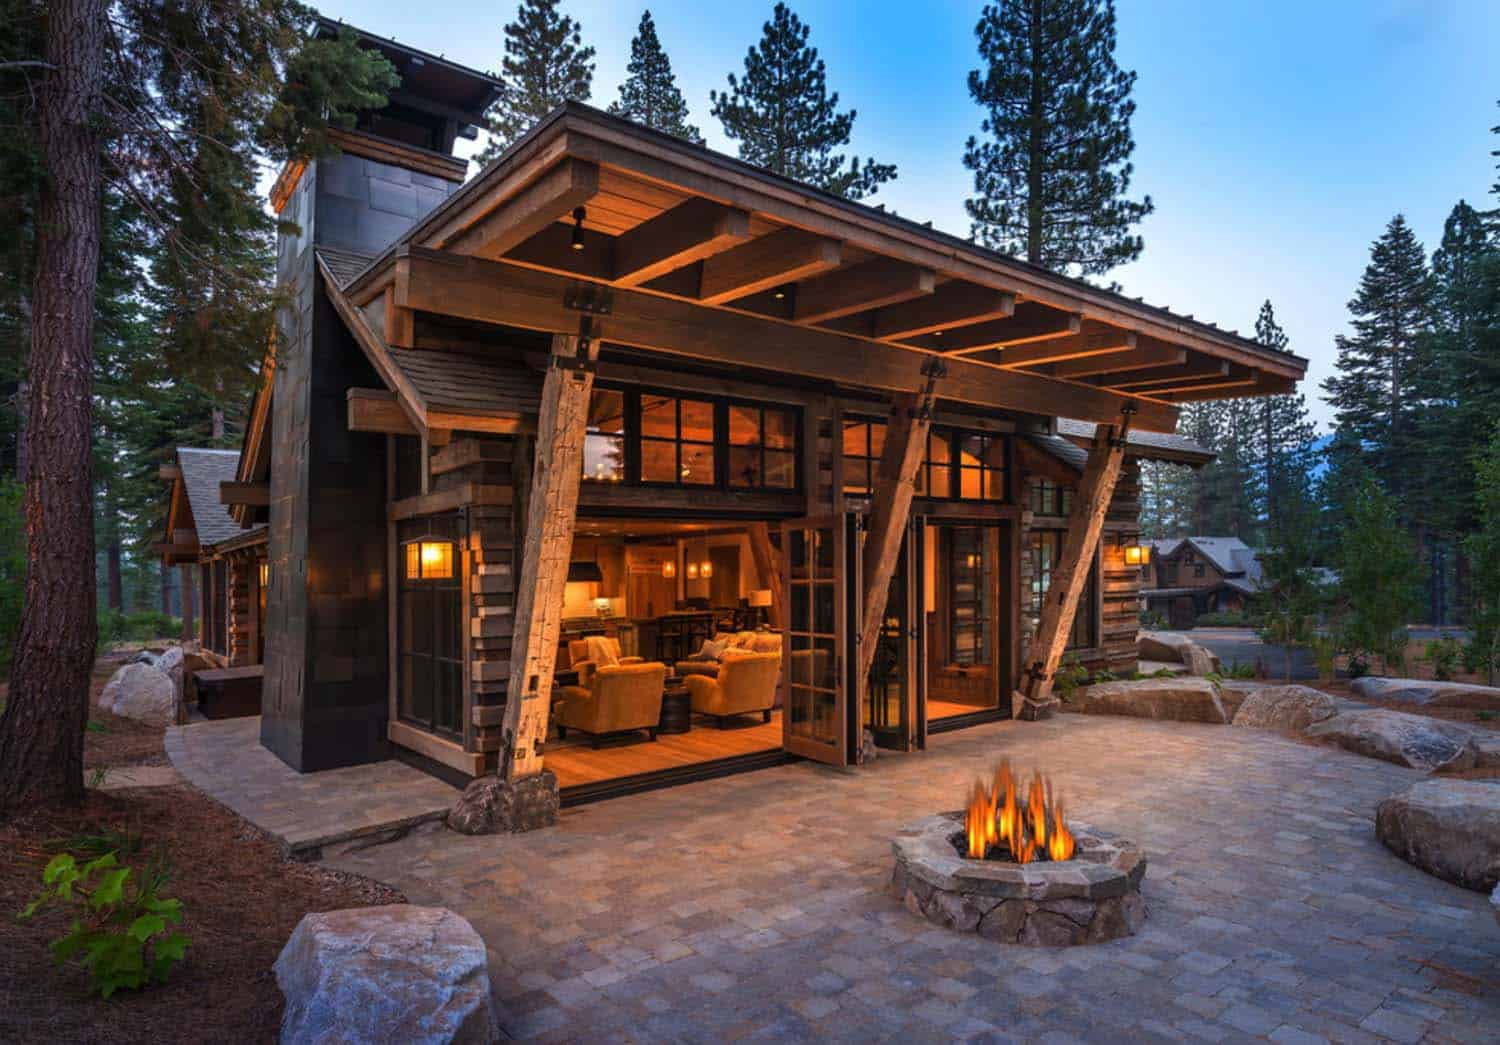 Cozy mountain style cabin getaway in martis camp california for Mountain lodge home plans